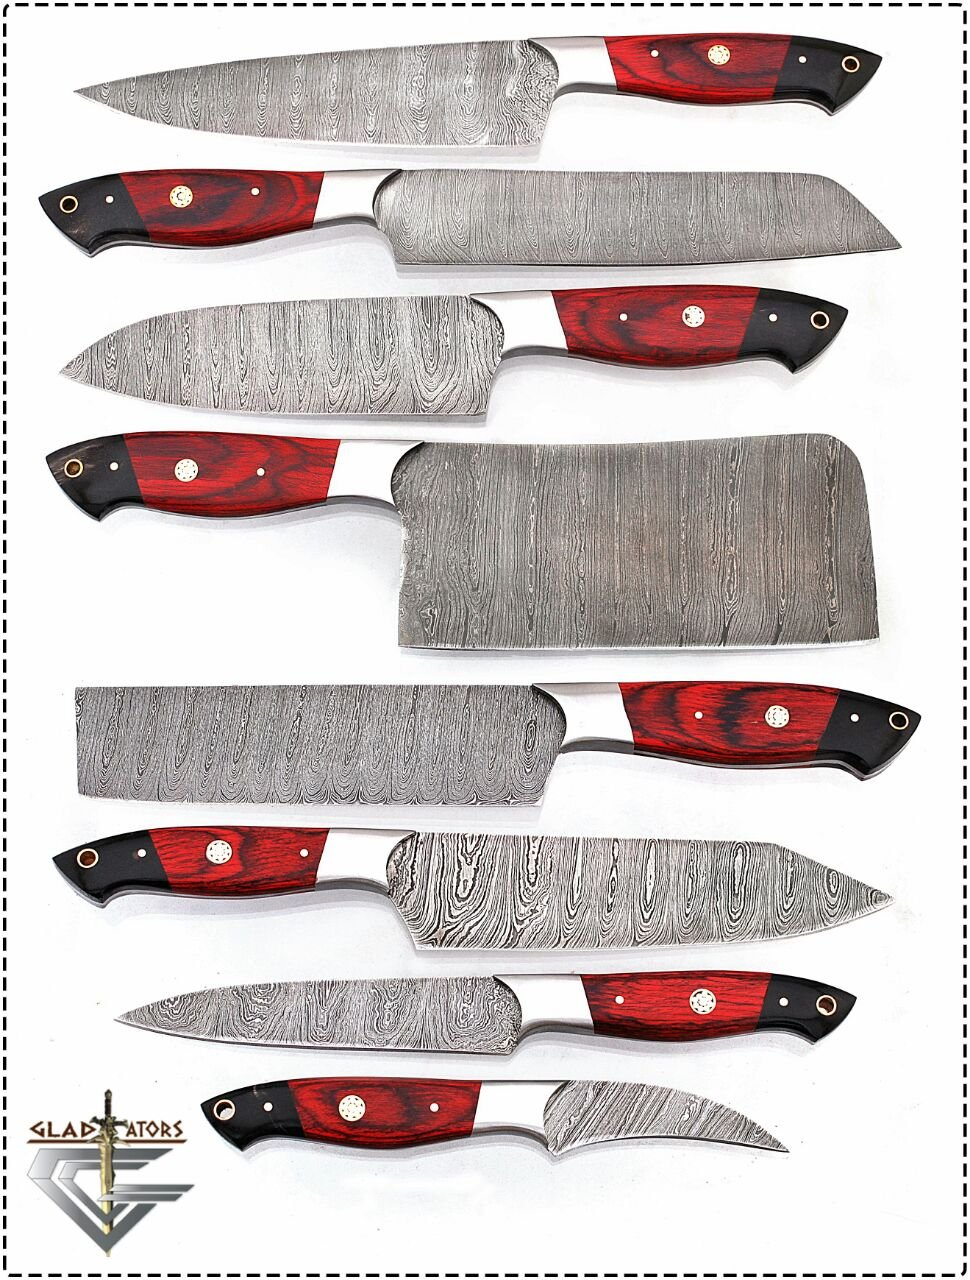 G16Red- Professional Kitchen Knives Custom Made Damascus Steel pcs of Professional Utility Chef Kitchen Knife Set with Chopper/Cleaver Black Horn (at end) GladiatorsGuild (8, Red)